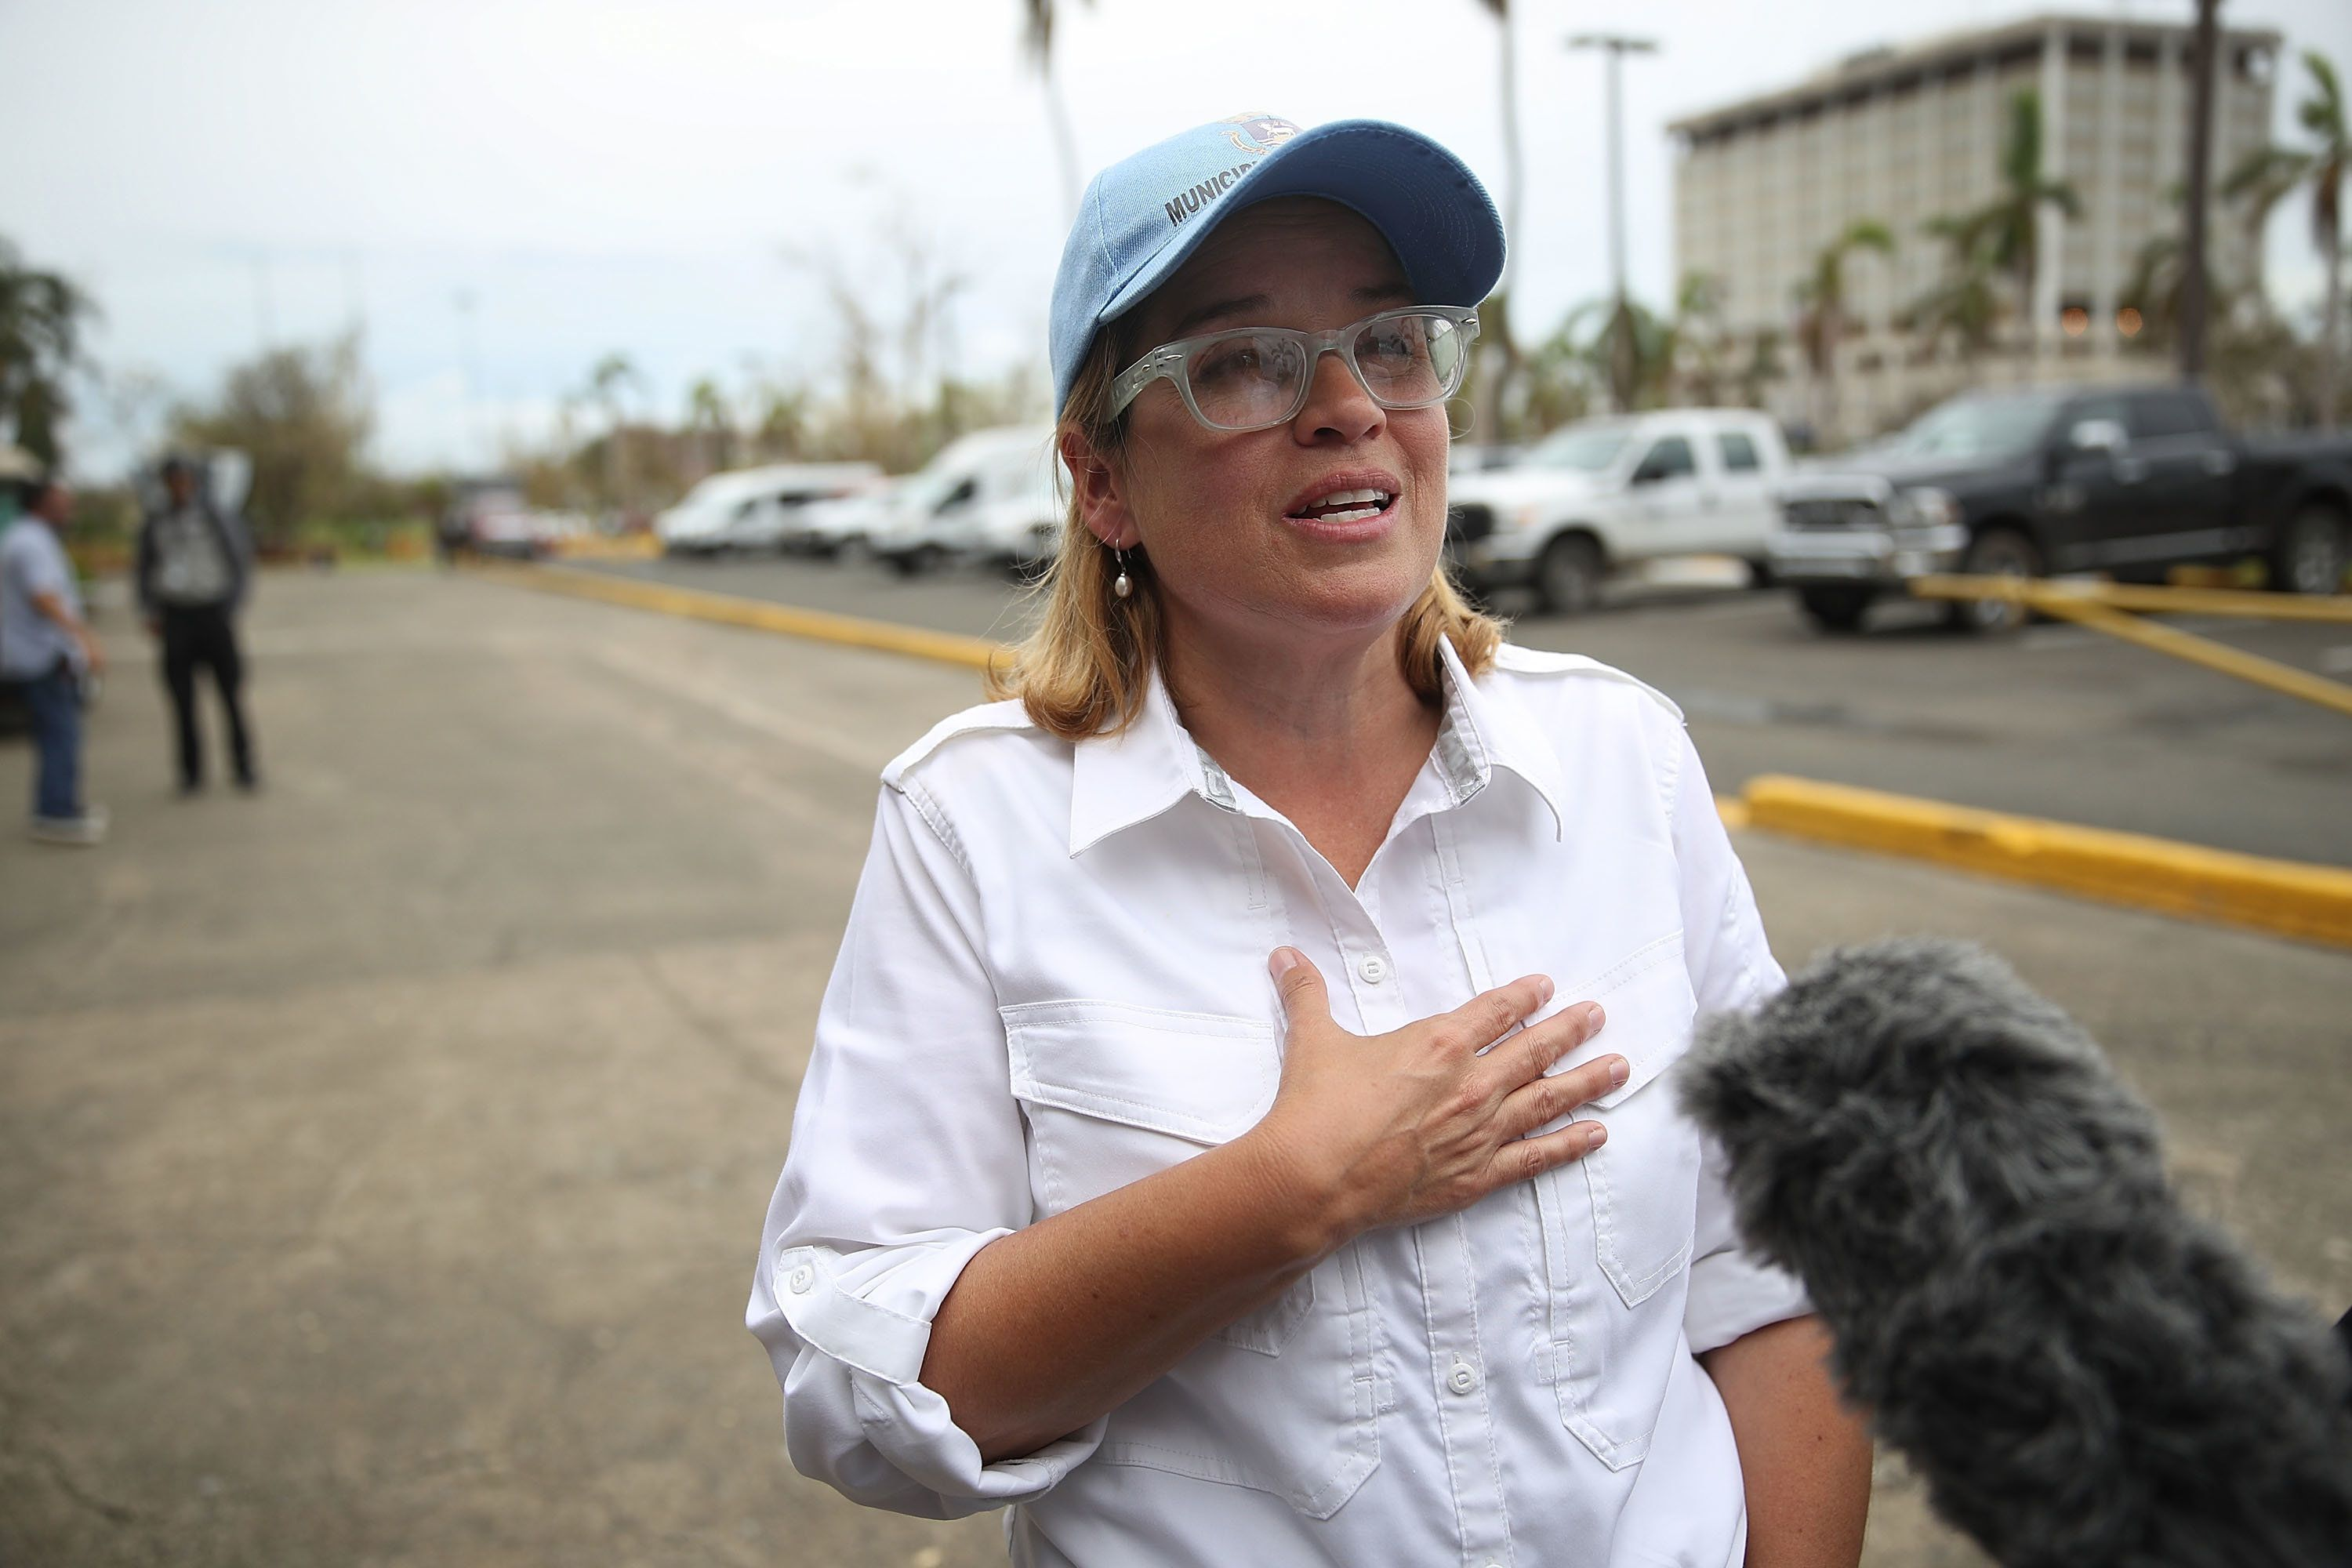 San Juan Mayor: Trump's Remarks Were 'Insulting,' 'Minimized Our Suffering'